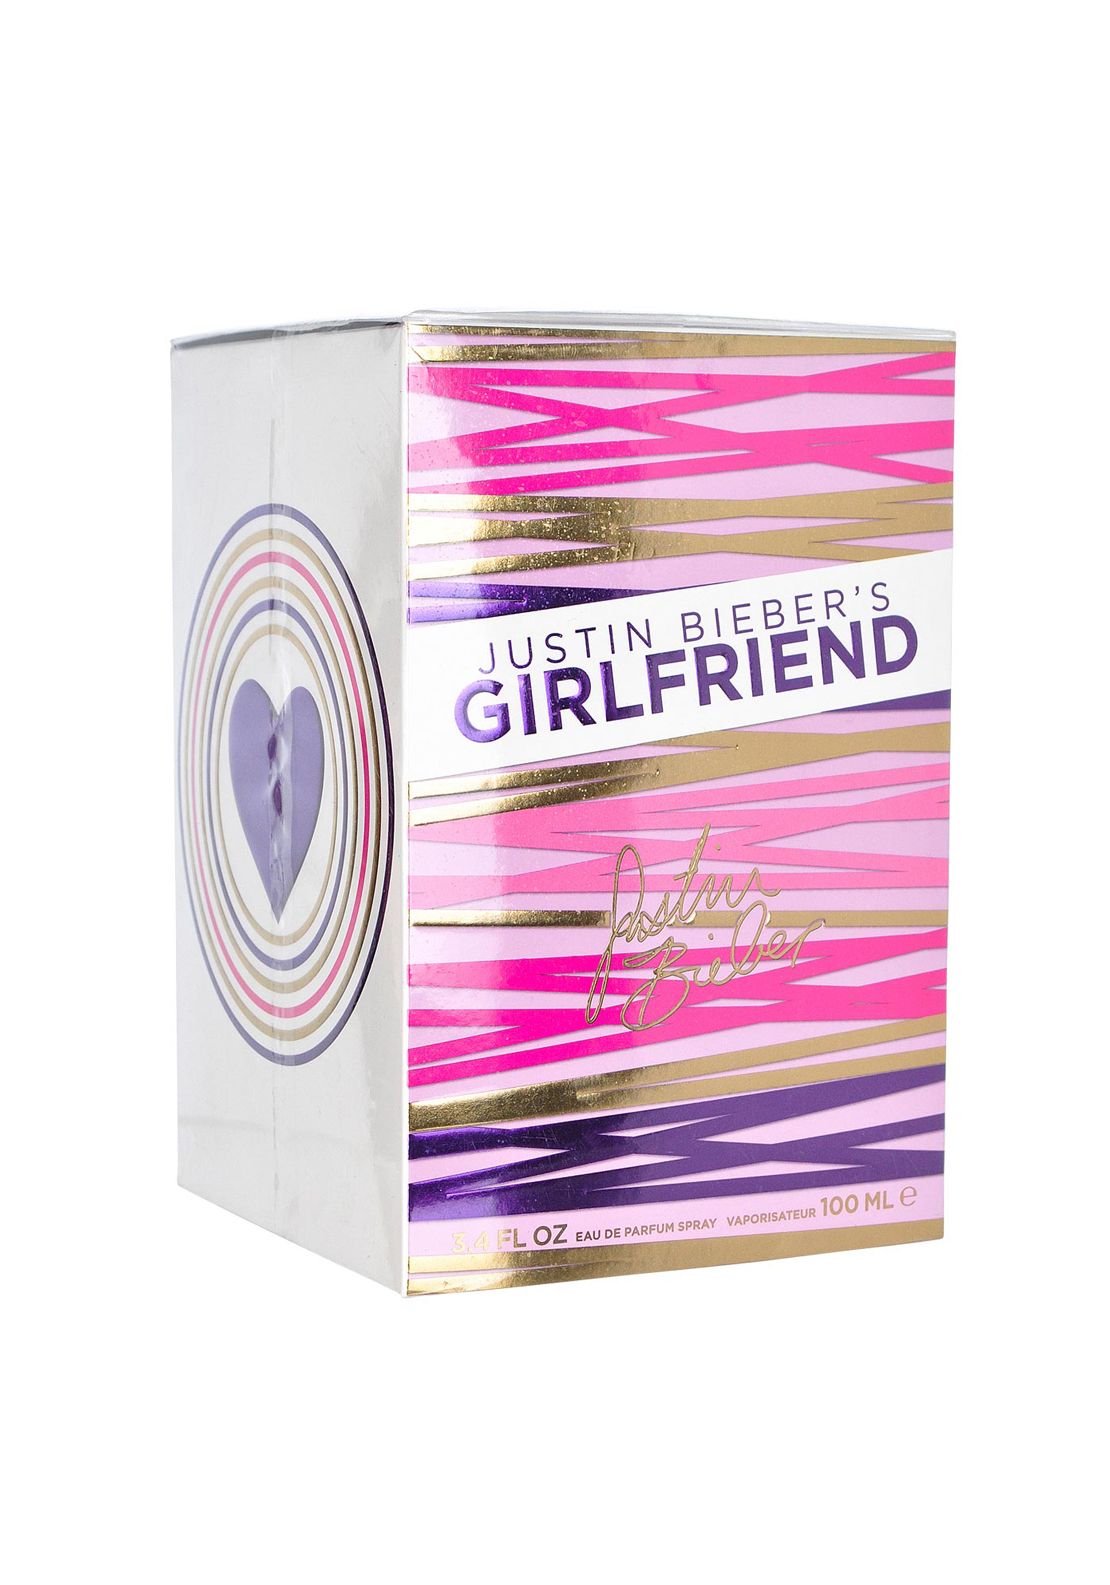 Justin Bieber's Girlfriend Eau De Parfum for Women, 100ml